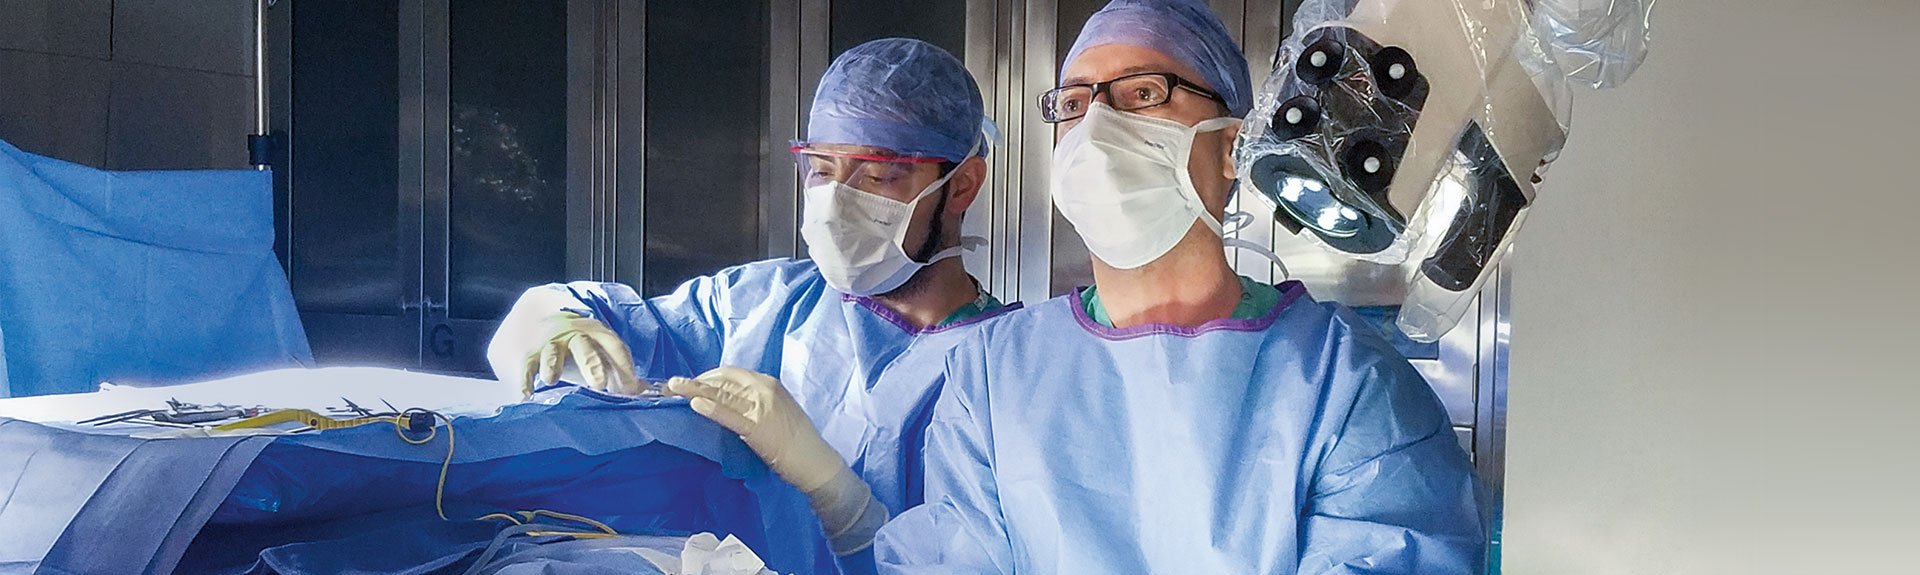 A photo of George Wanna, MD, using exoscopic technology in the operating room.